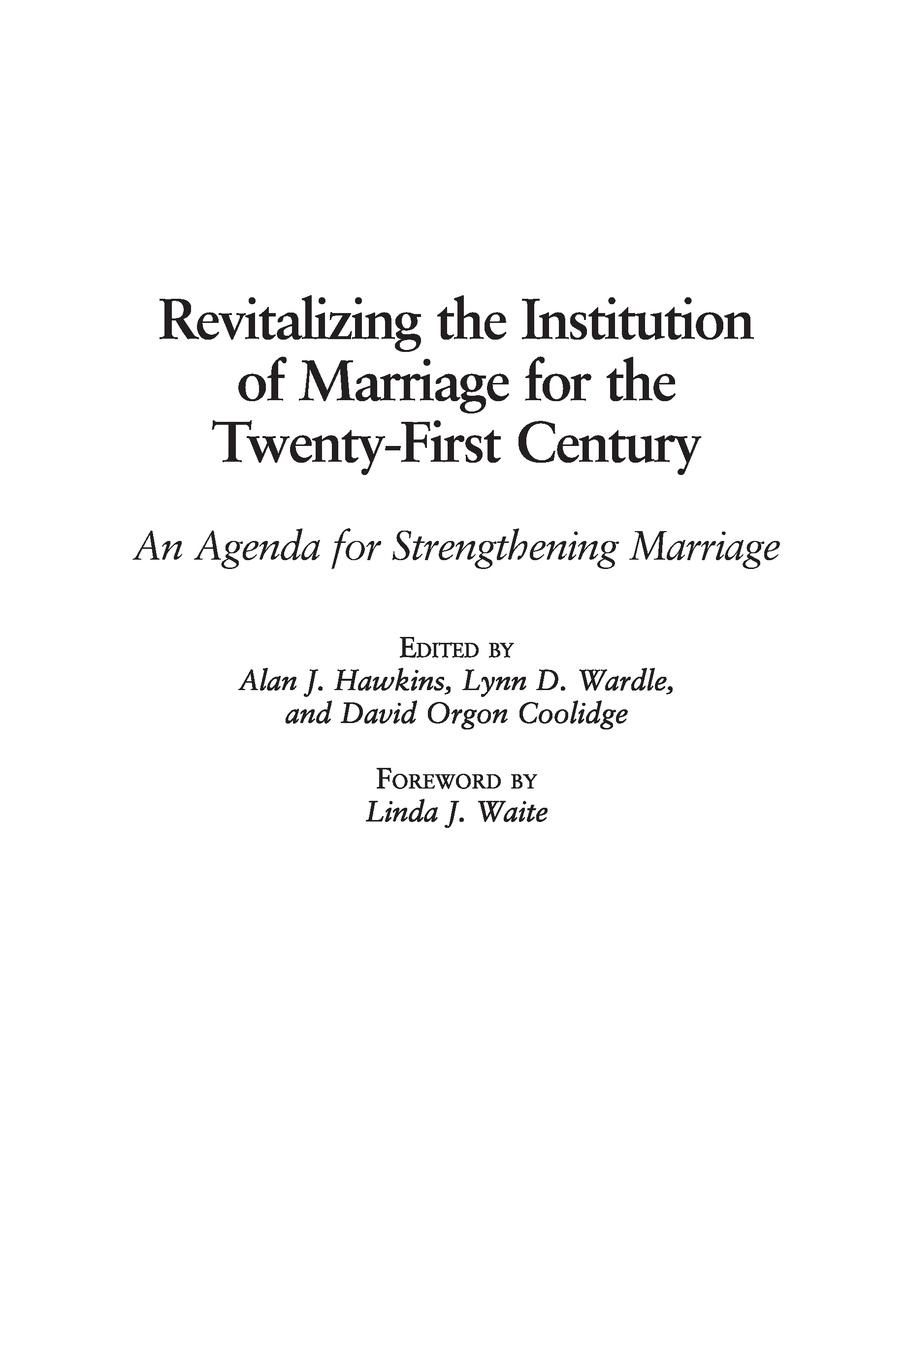 Revitalizing the Institution of Marriage for Twenty-First Century. An Agenda Strengthening